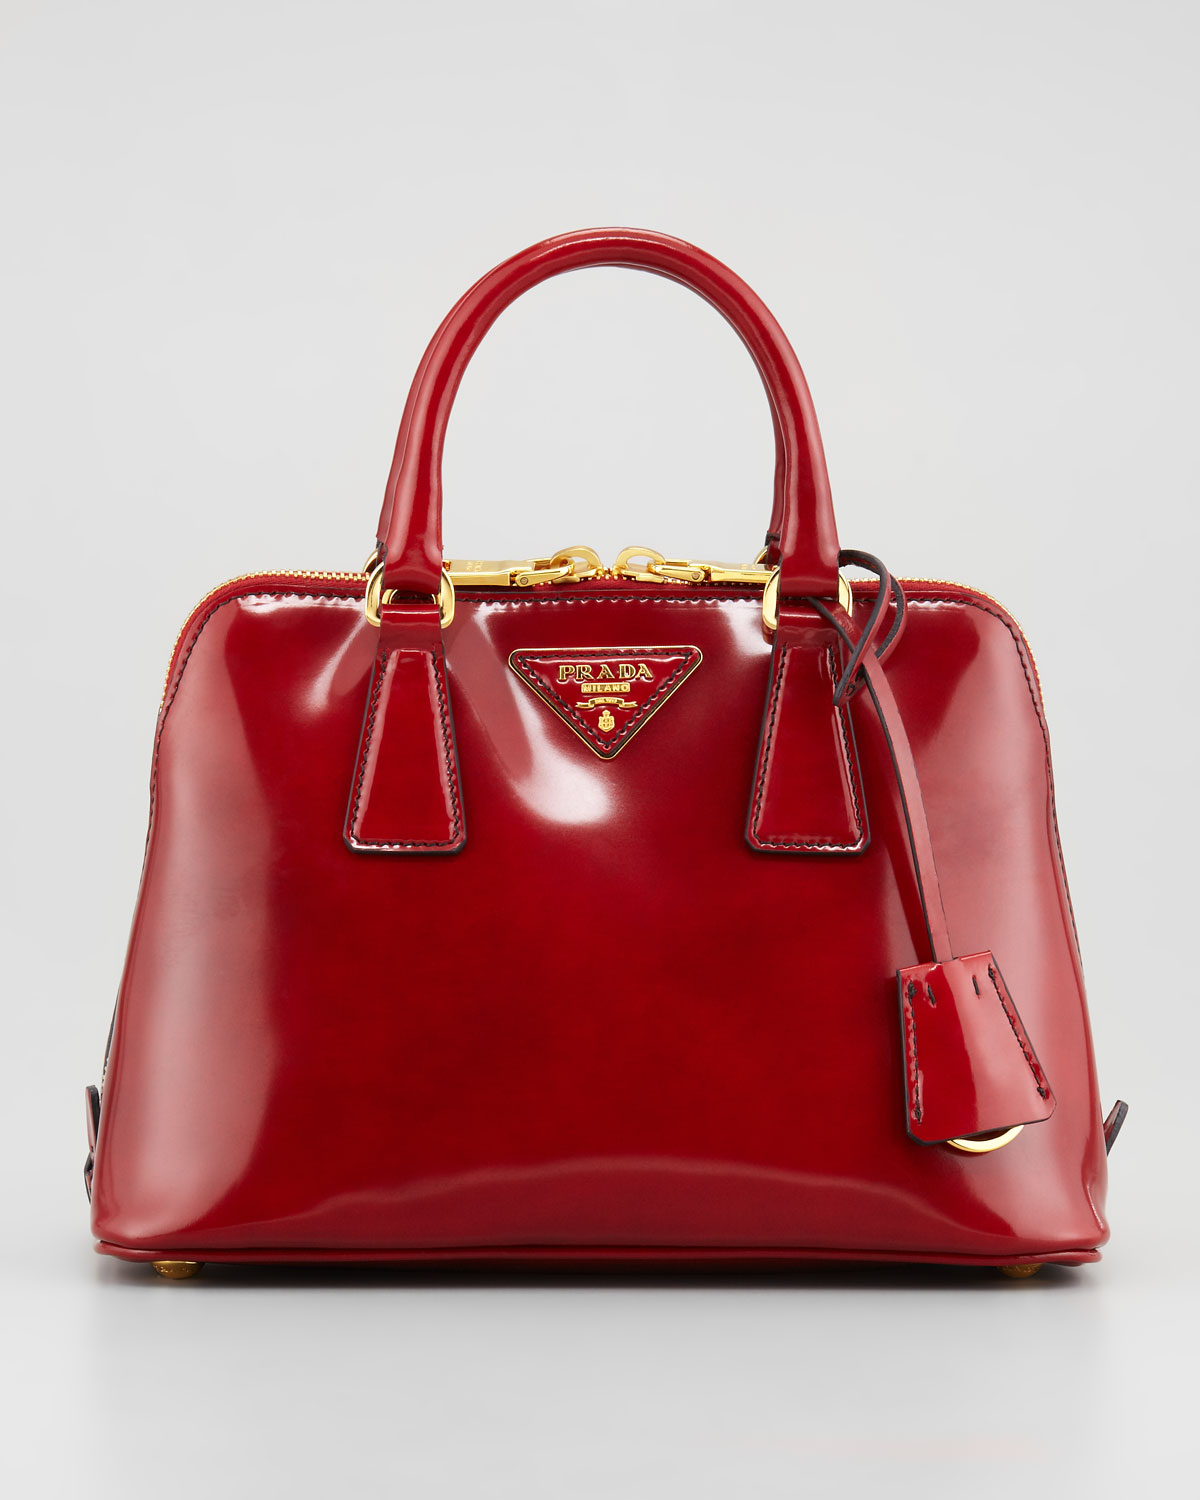 Prada Spazzolato Promenade Satchel Bag in Red | Lyst